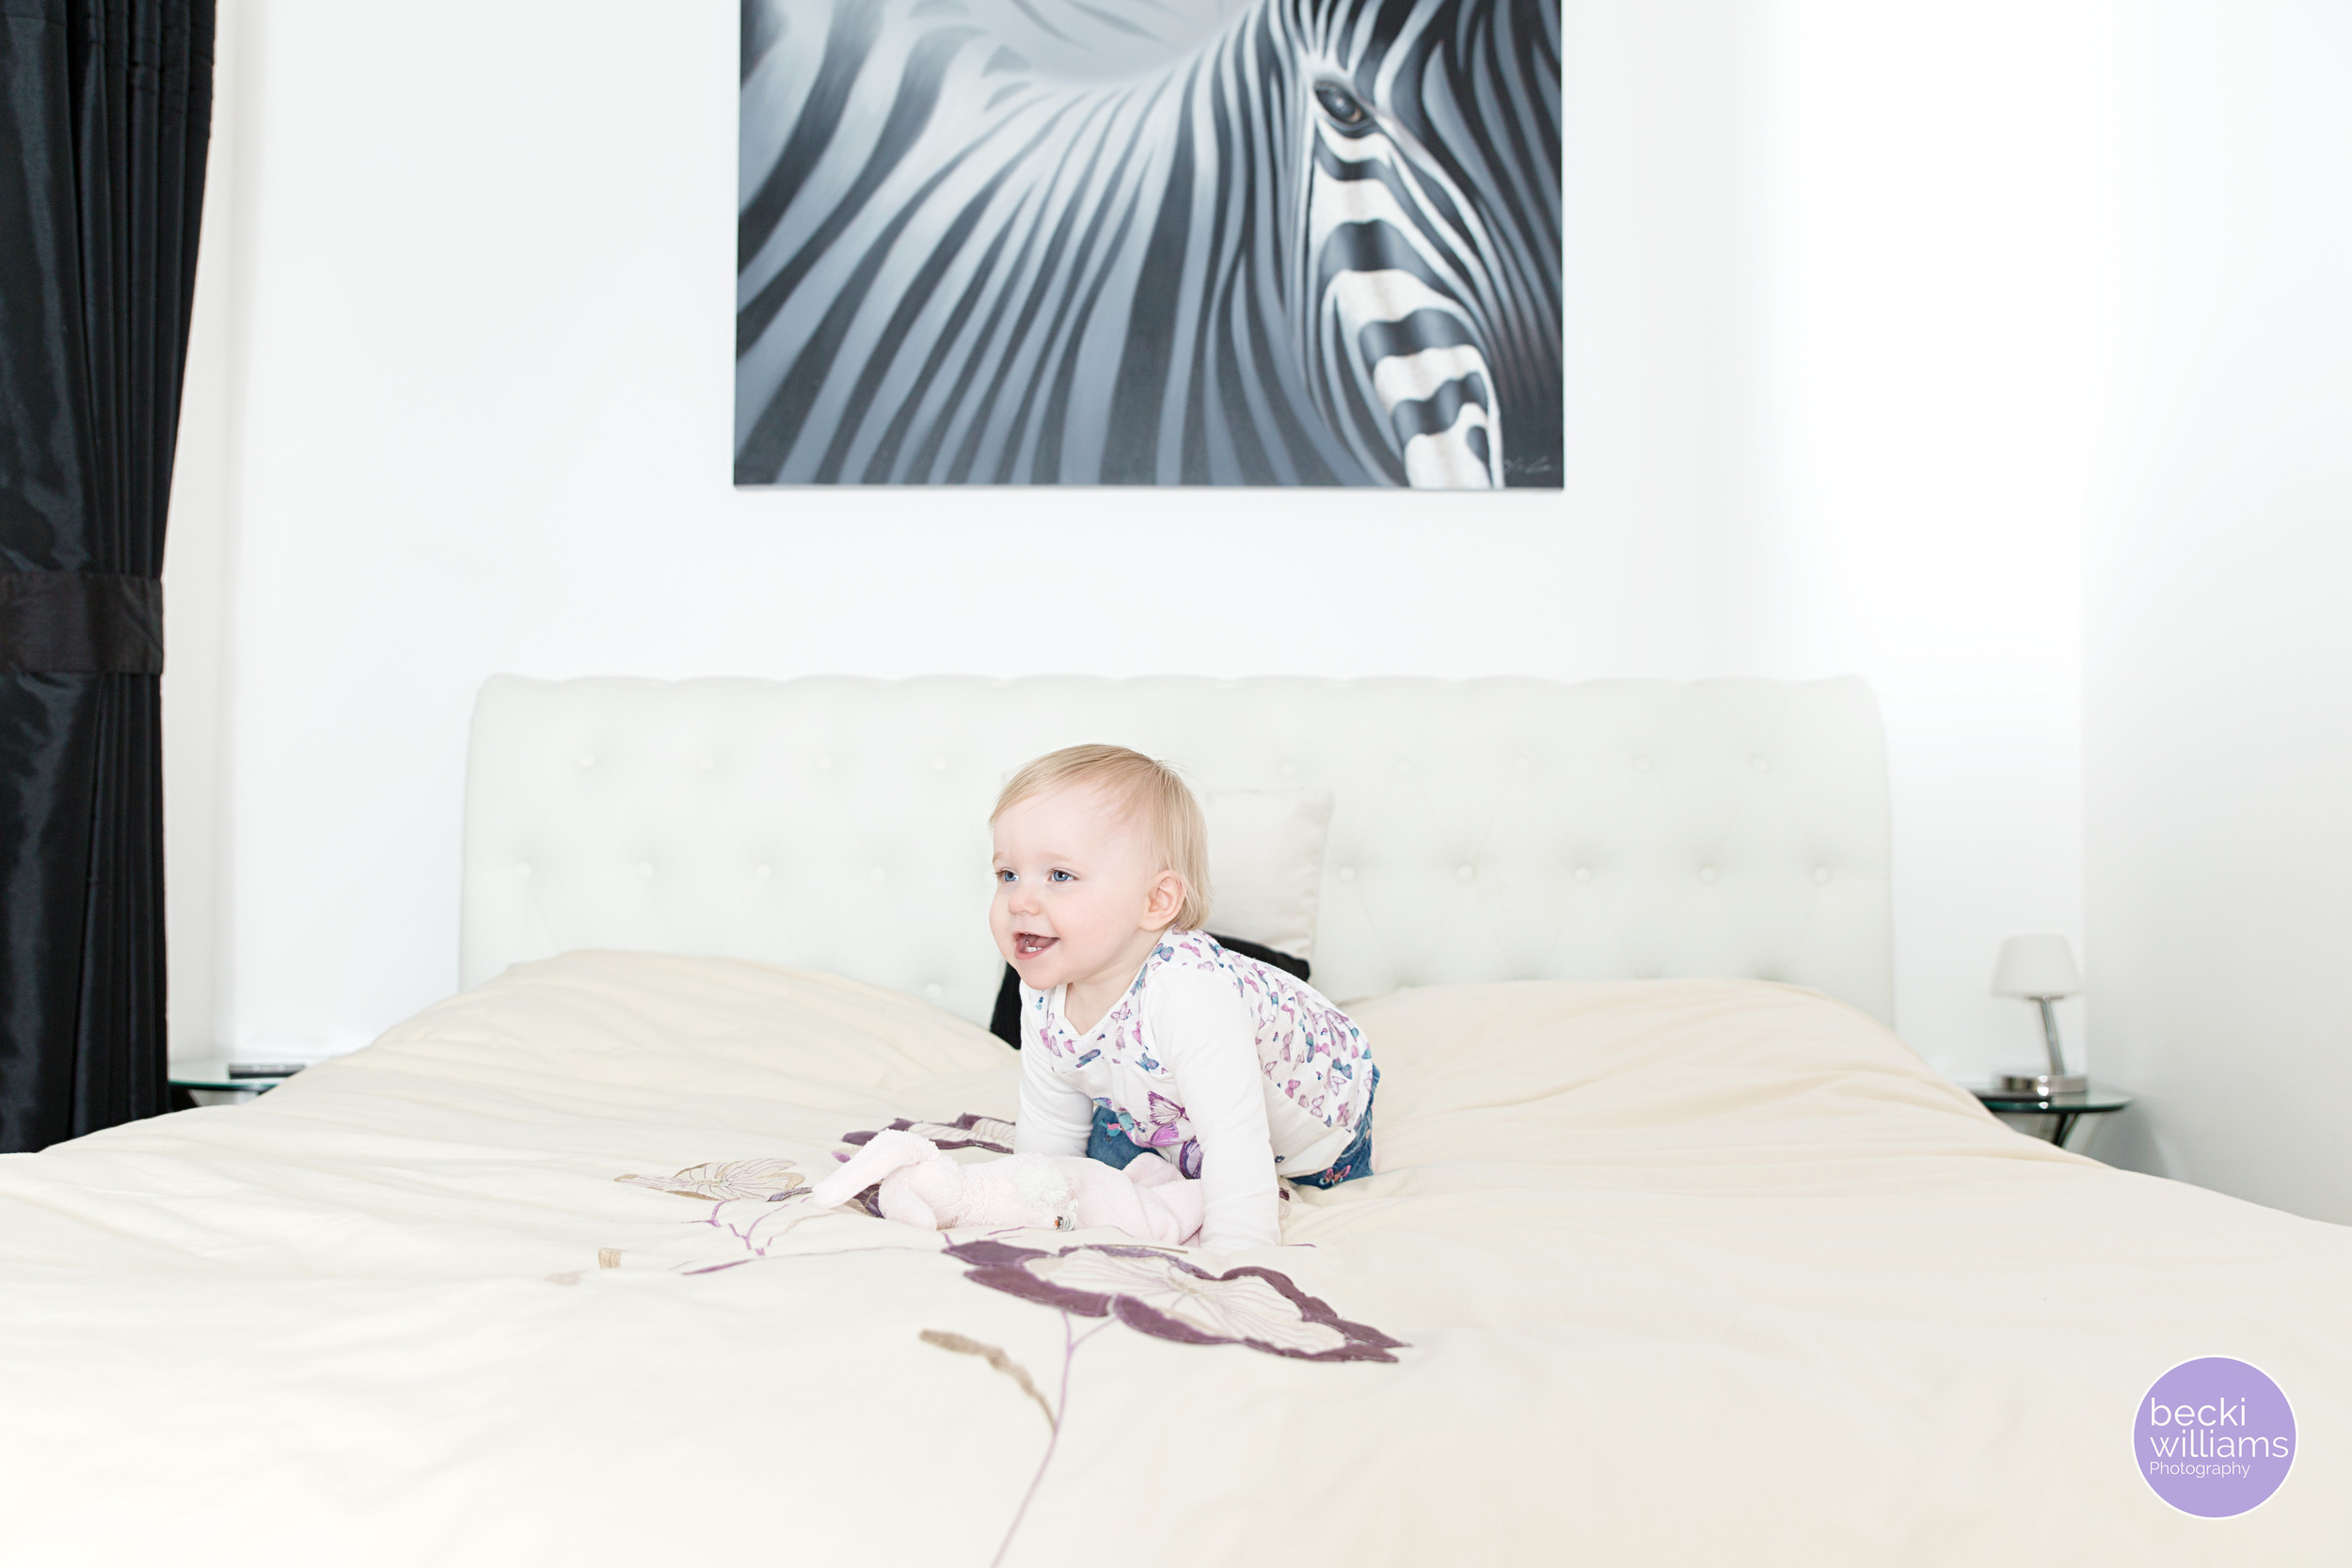 Baby-photography-hemel-hempstead-on-bed-teddy.jpg